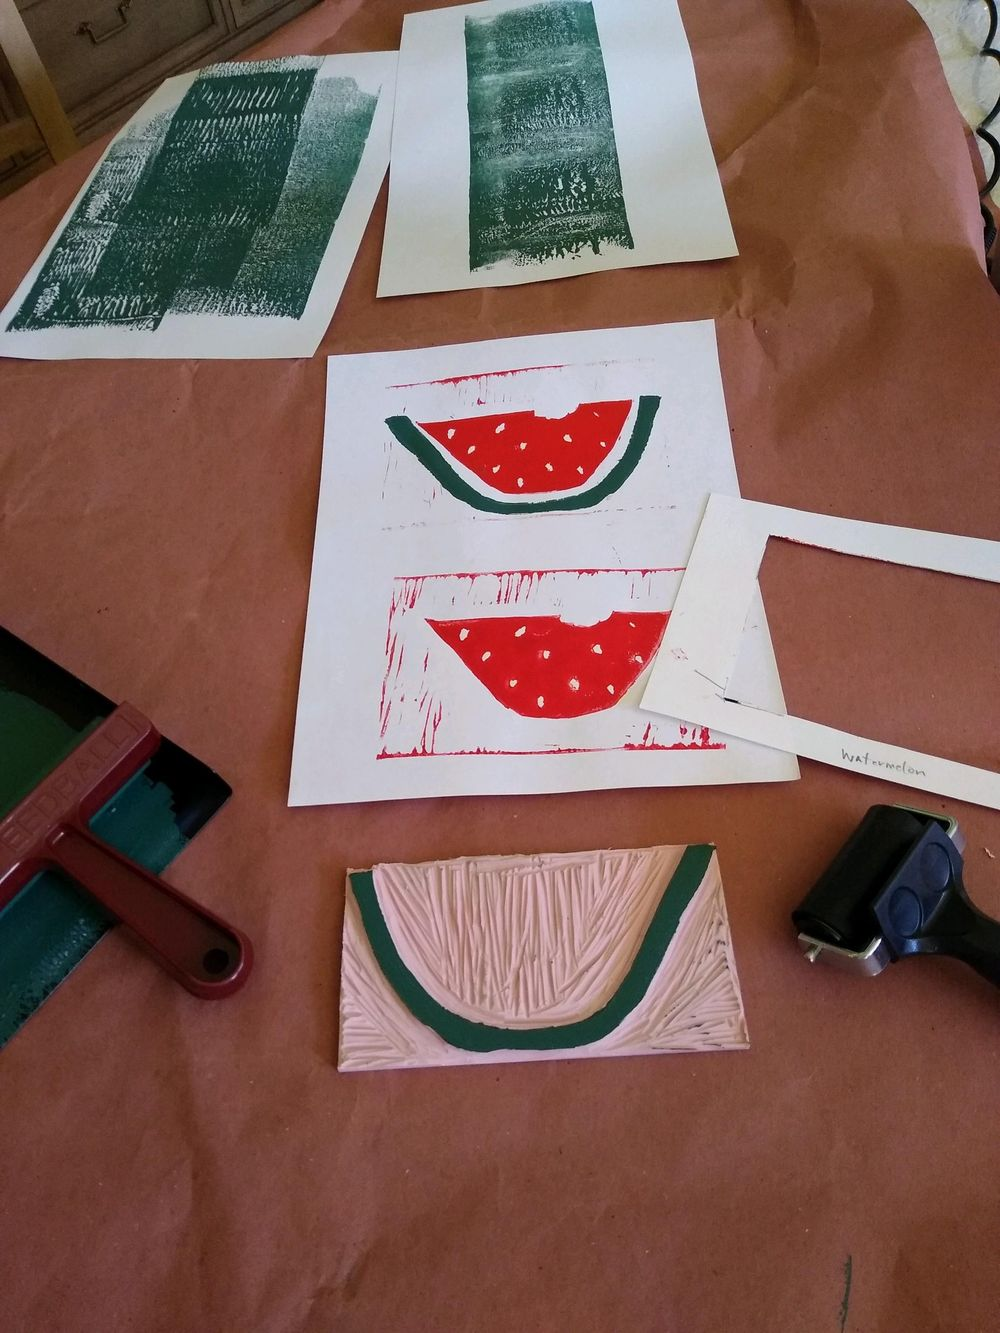 Two-Color Block Print (Watermelon) - image 1 - student project